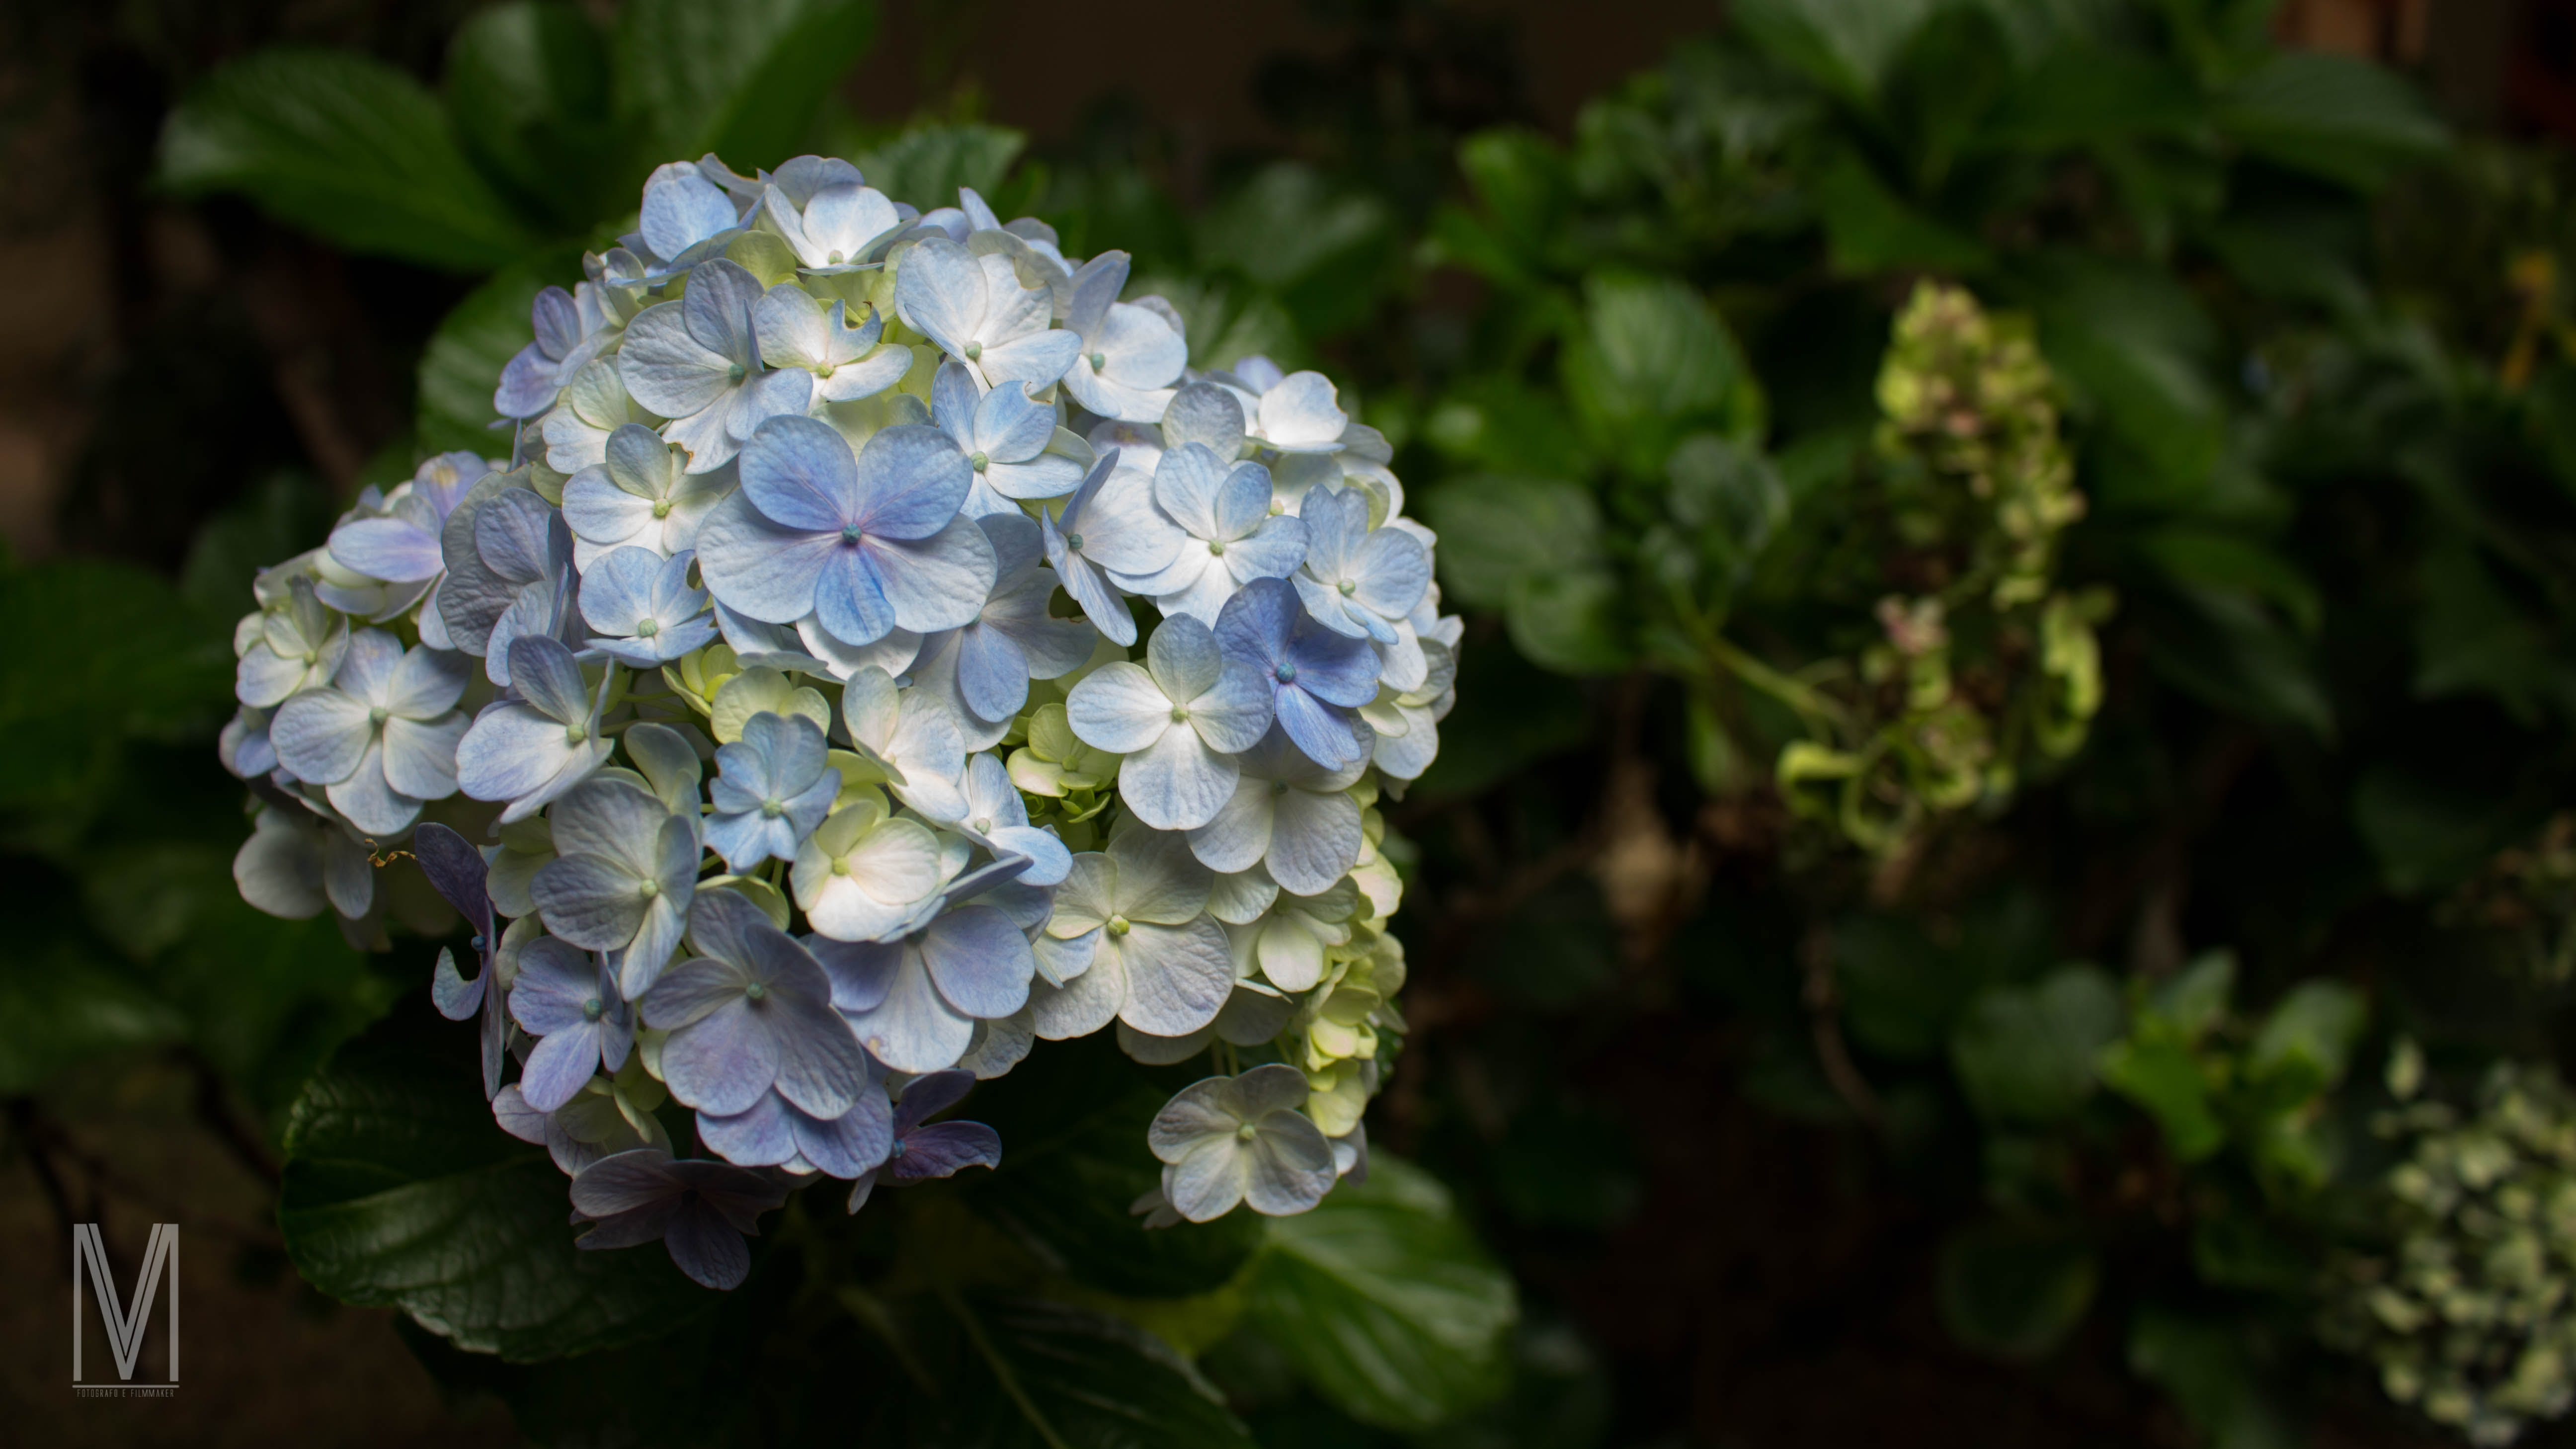 Free stock photo of blue flowers, bunch of flowers, green leaf